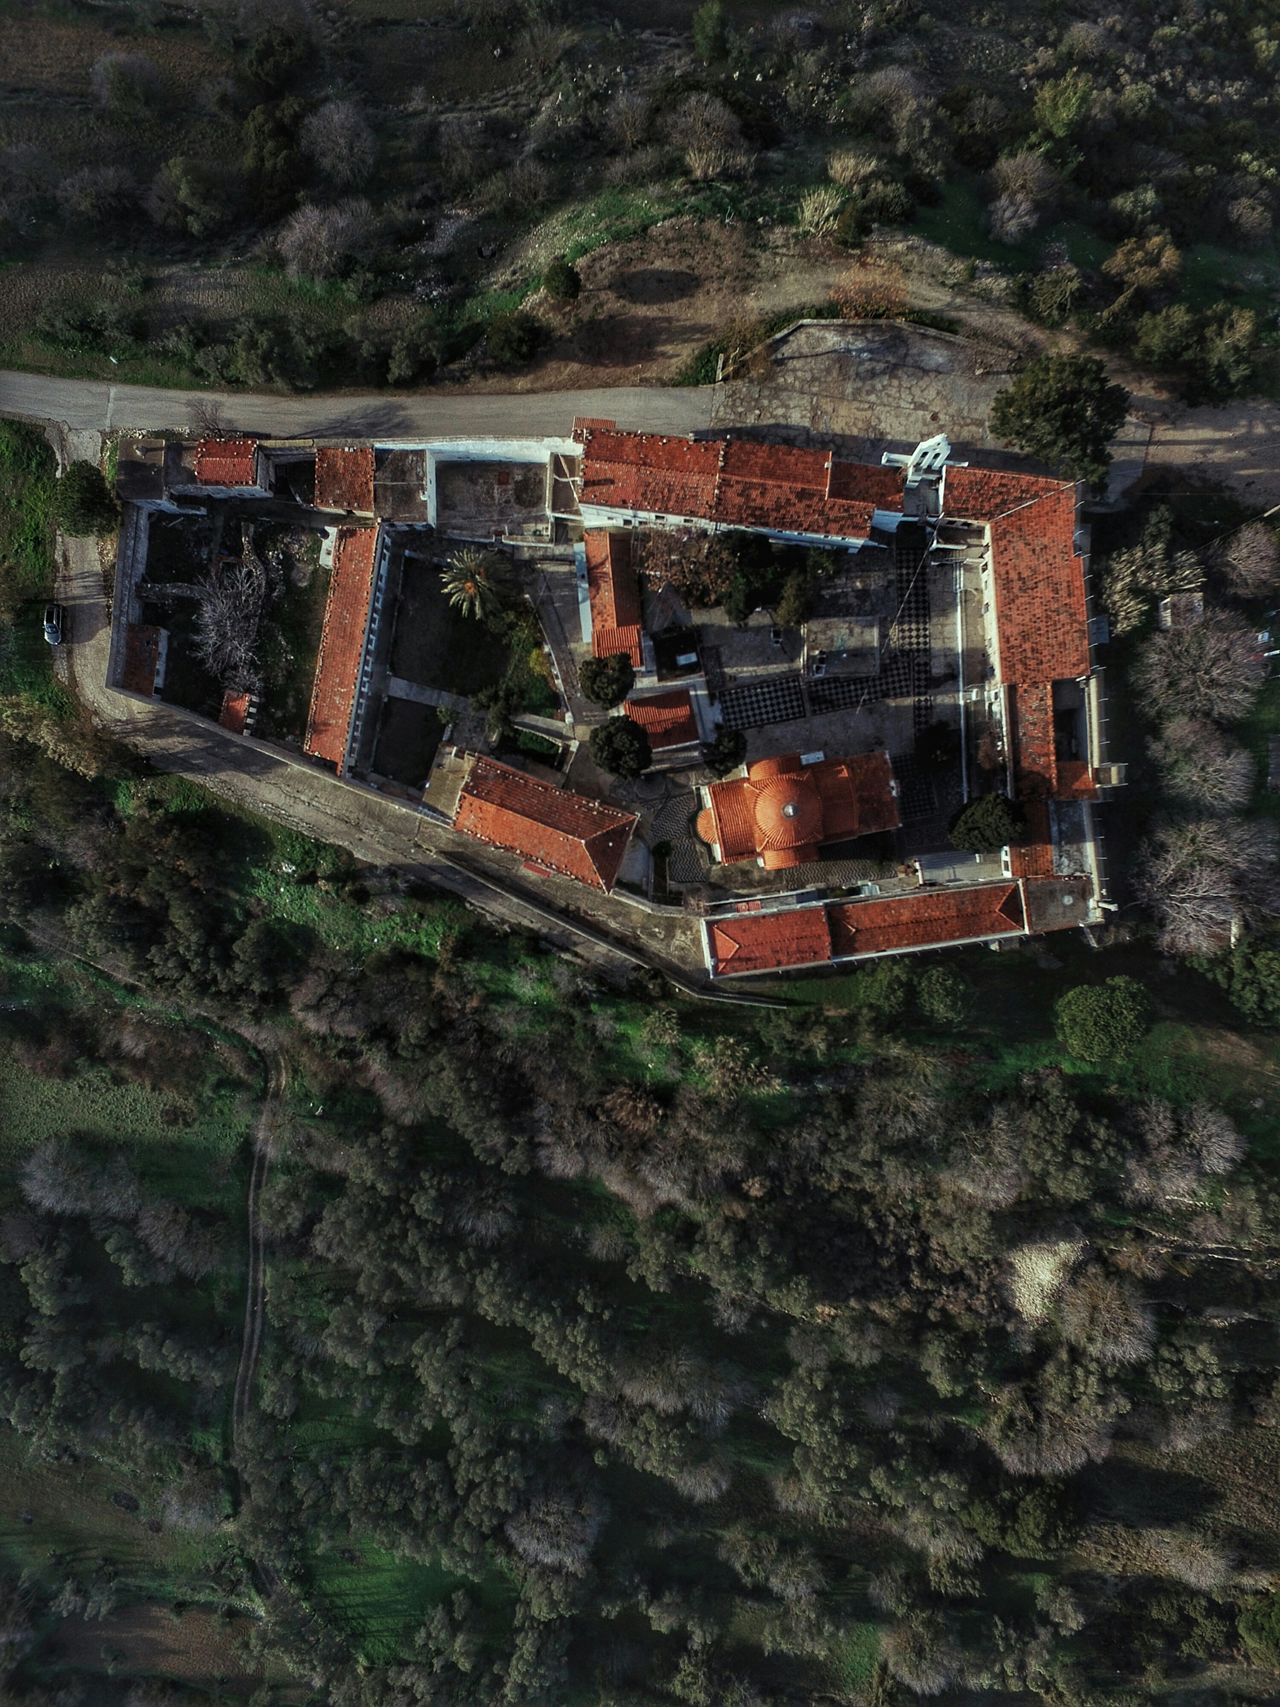 Monastery View From Above Aerial Shot Dronephotography Religious Architecture Travel Destinations Tranquil Scene Beauty In Nature Church Architecture Aerial View Early Morning Morning Light Drone  Church Building Exterior Architecture Religion Tranquility Malephotographerofthemonth Birds Eye View Trees Calmness